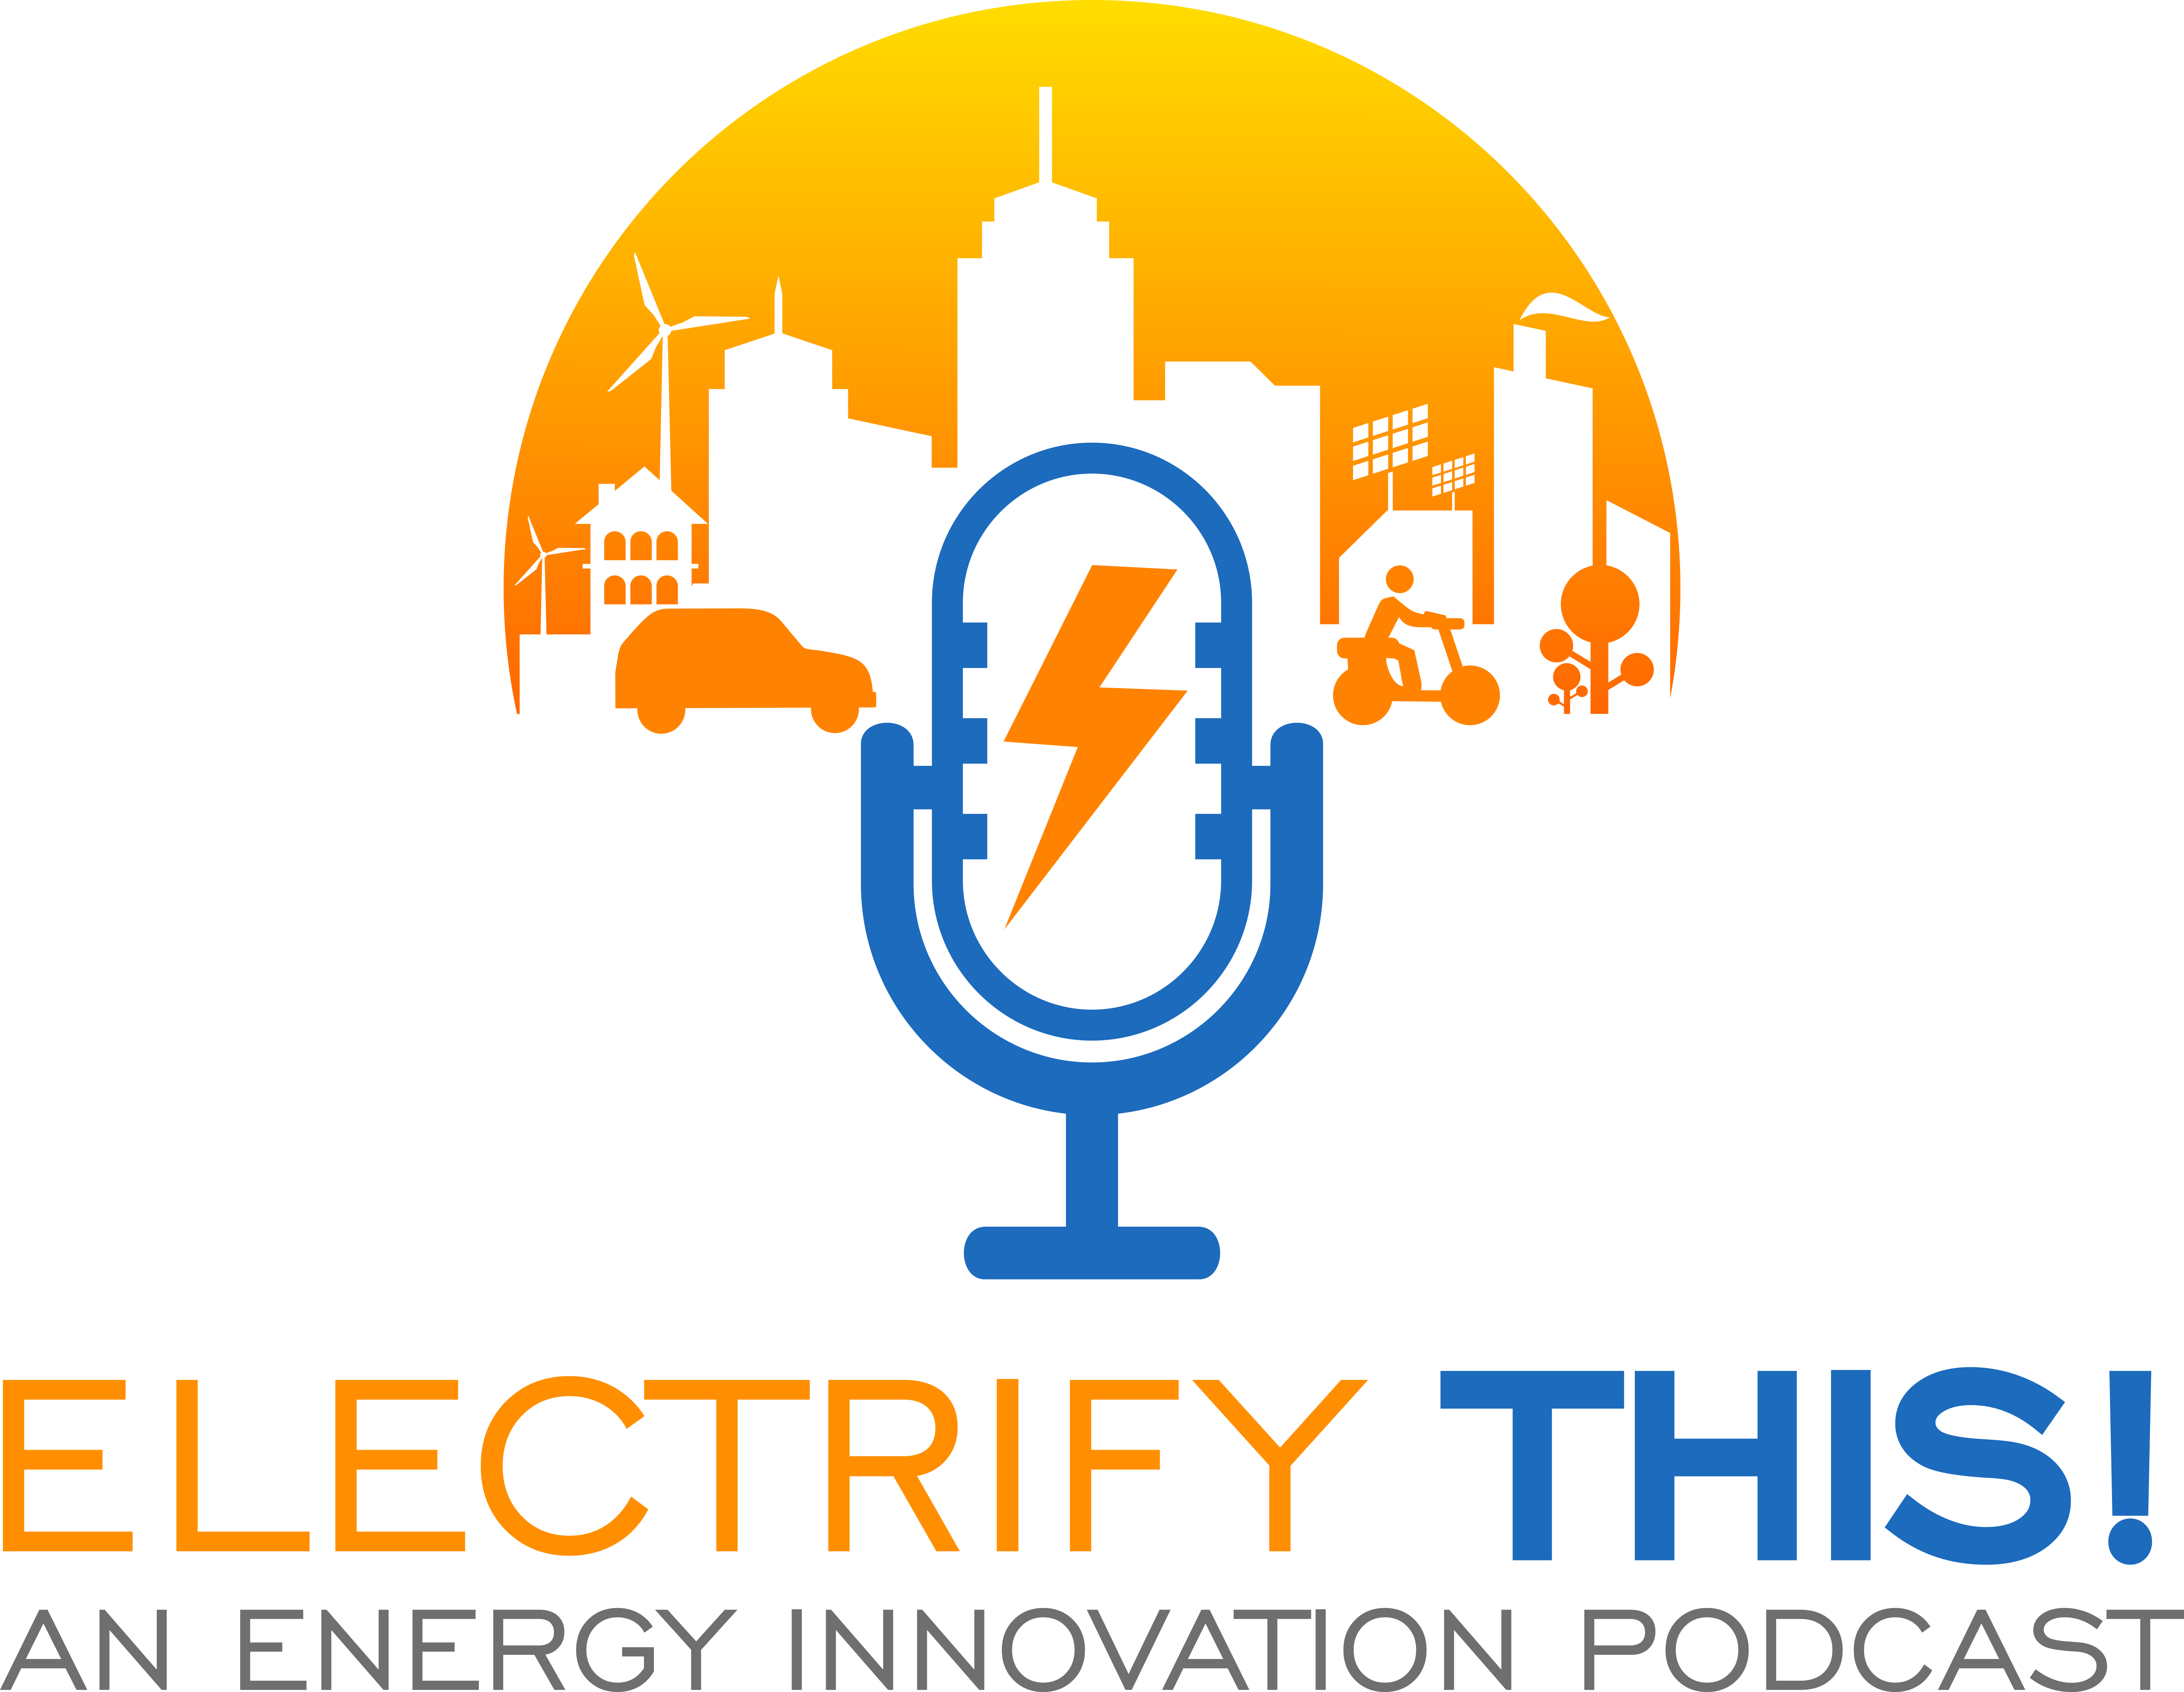 Eye-catching logo for new clean energy policy podcast